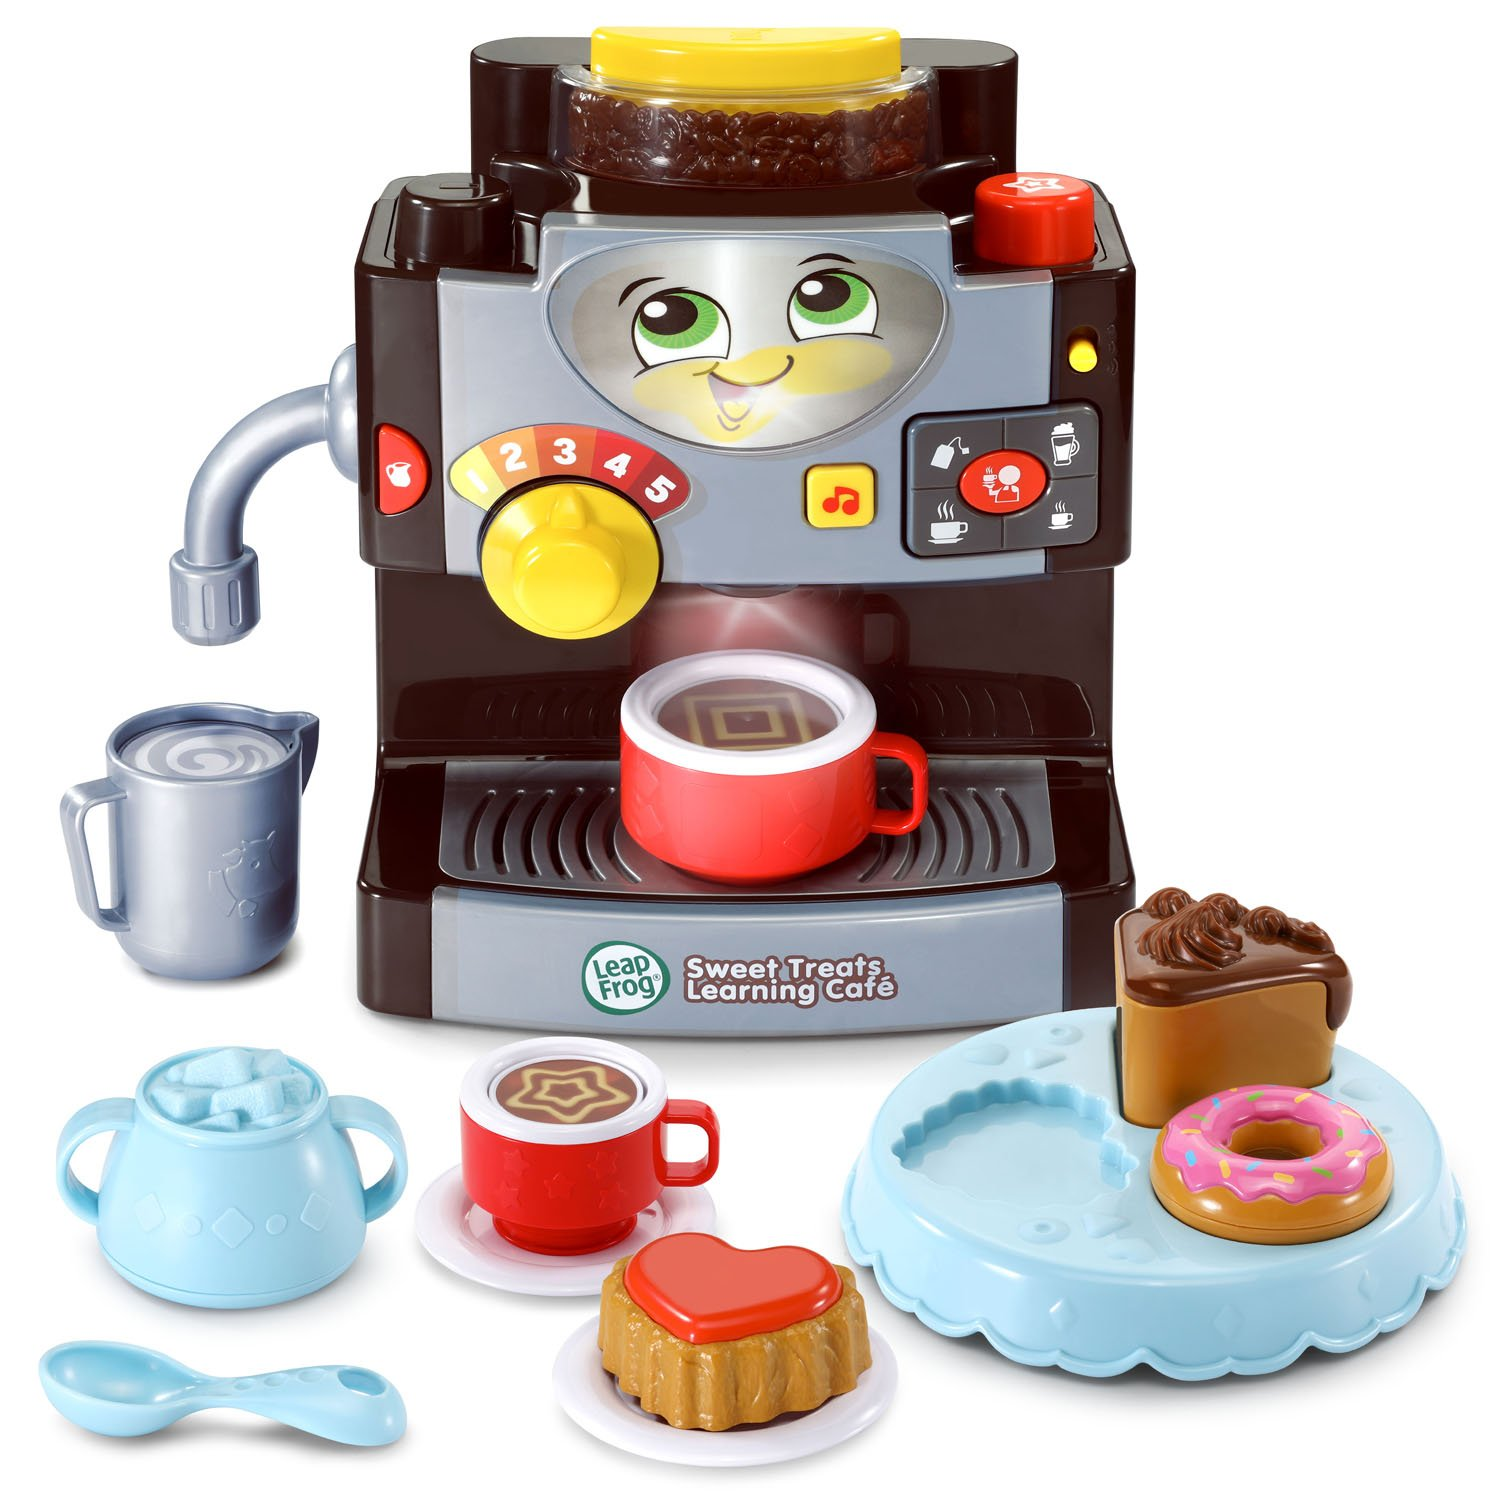 LeapFrog Sweet Treats Learning Café Amazon Exclusive, Black by LeapFrog (Image #2)